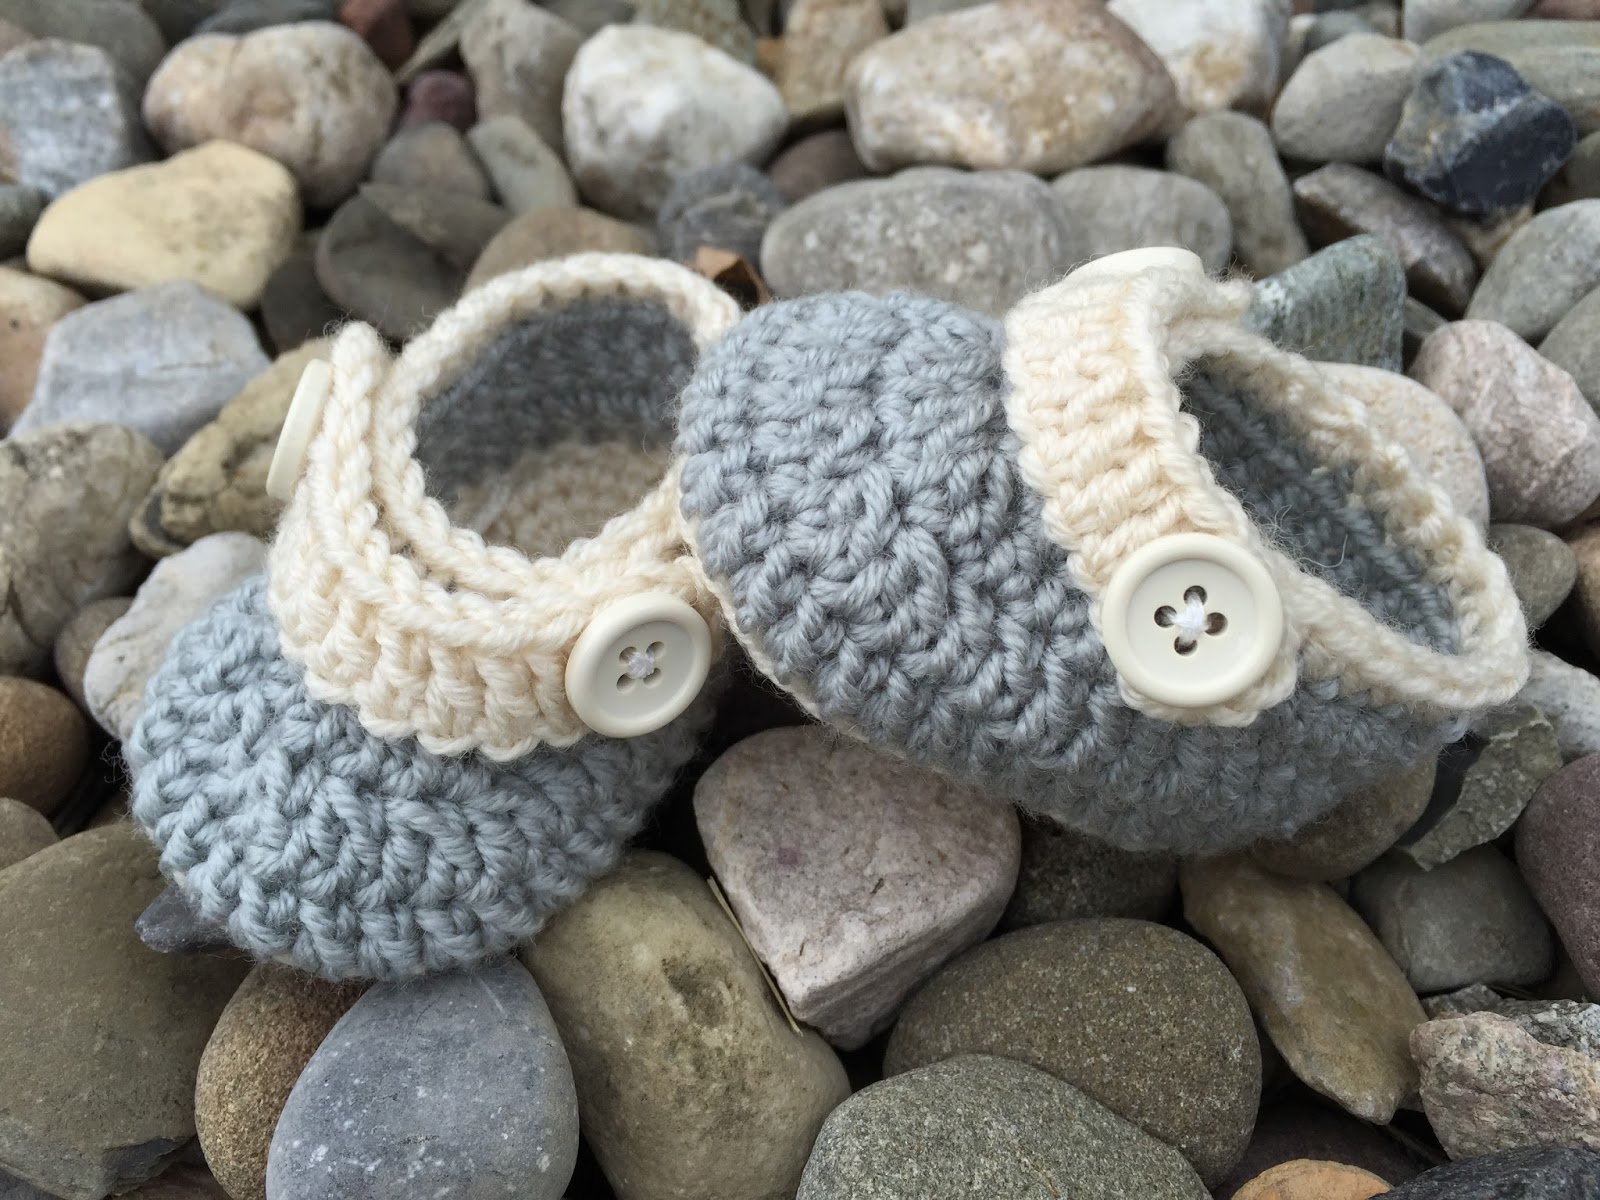 Crochet Baby Booties Pattern For Free : 25 Cutest Free Crochet Baby Bootie Patterns